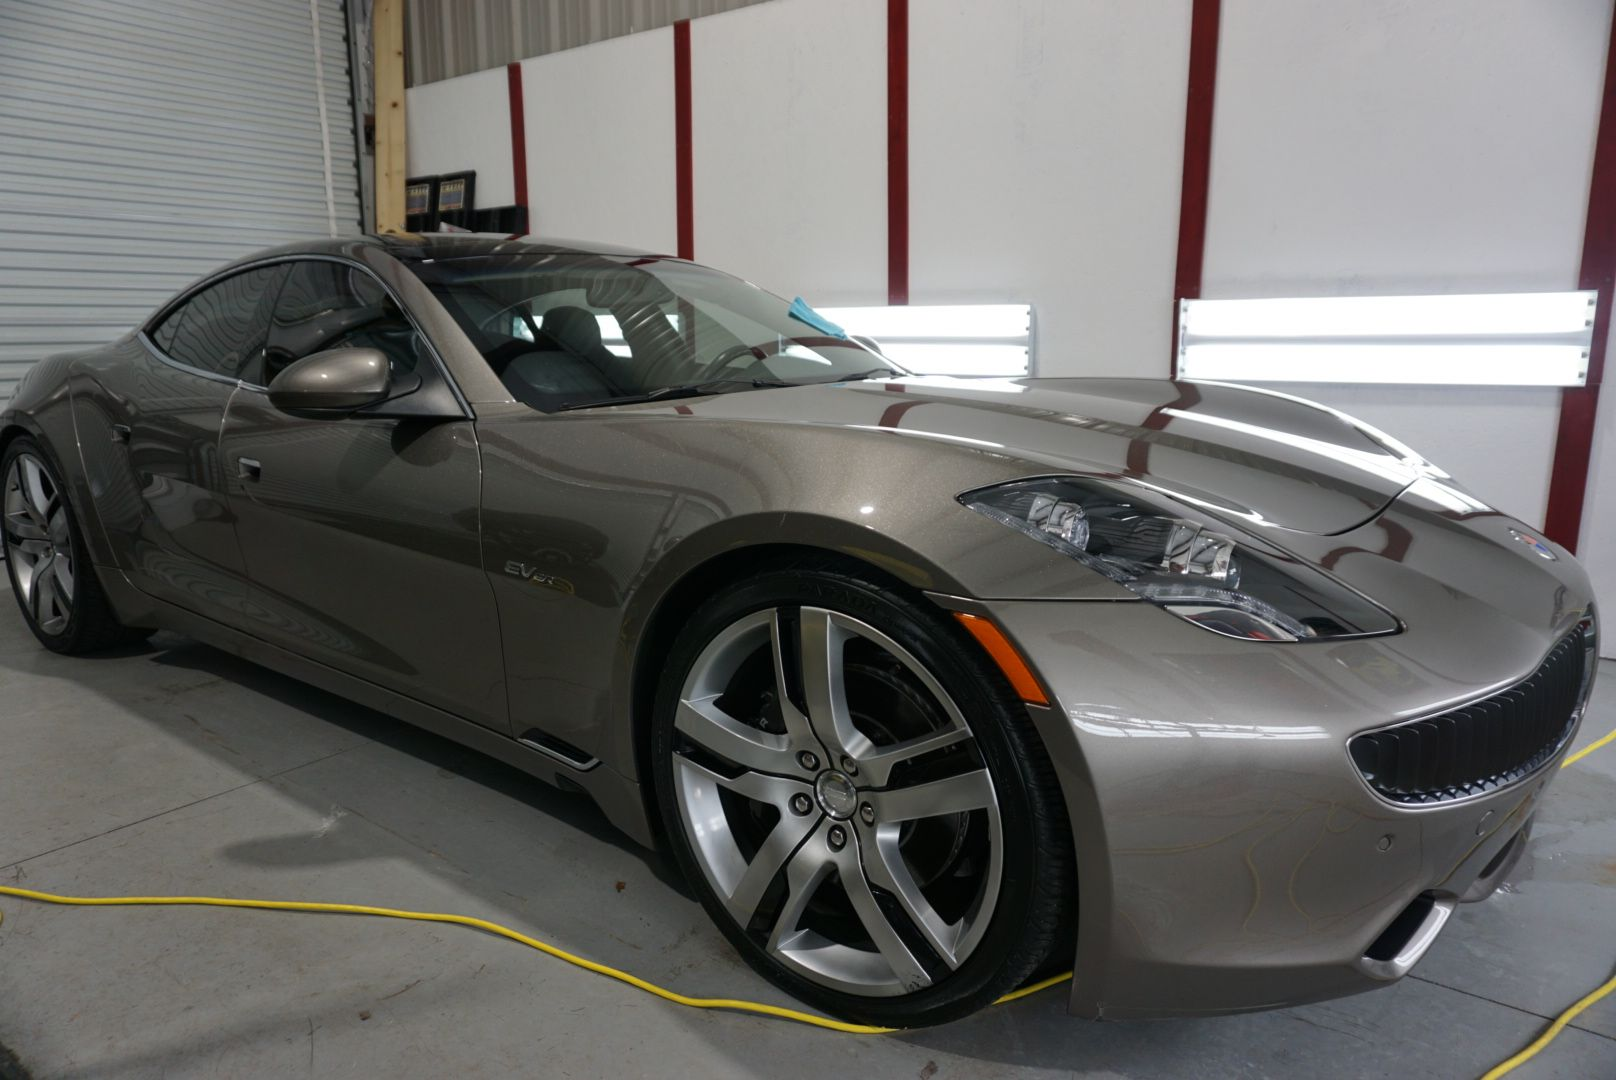 Ceramic Coating Of A 2016 Fisker Karma August Precision The Automotive Appearance Specialists We Offer Profes Ceramic Coating Automotive Restoration Ceramics